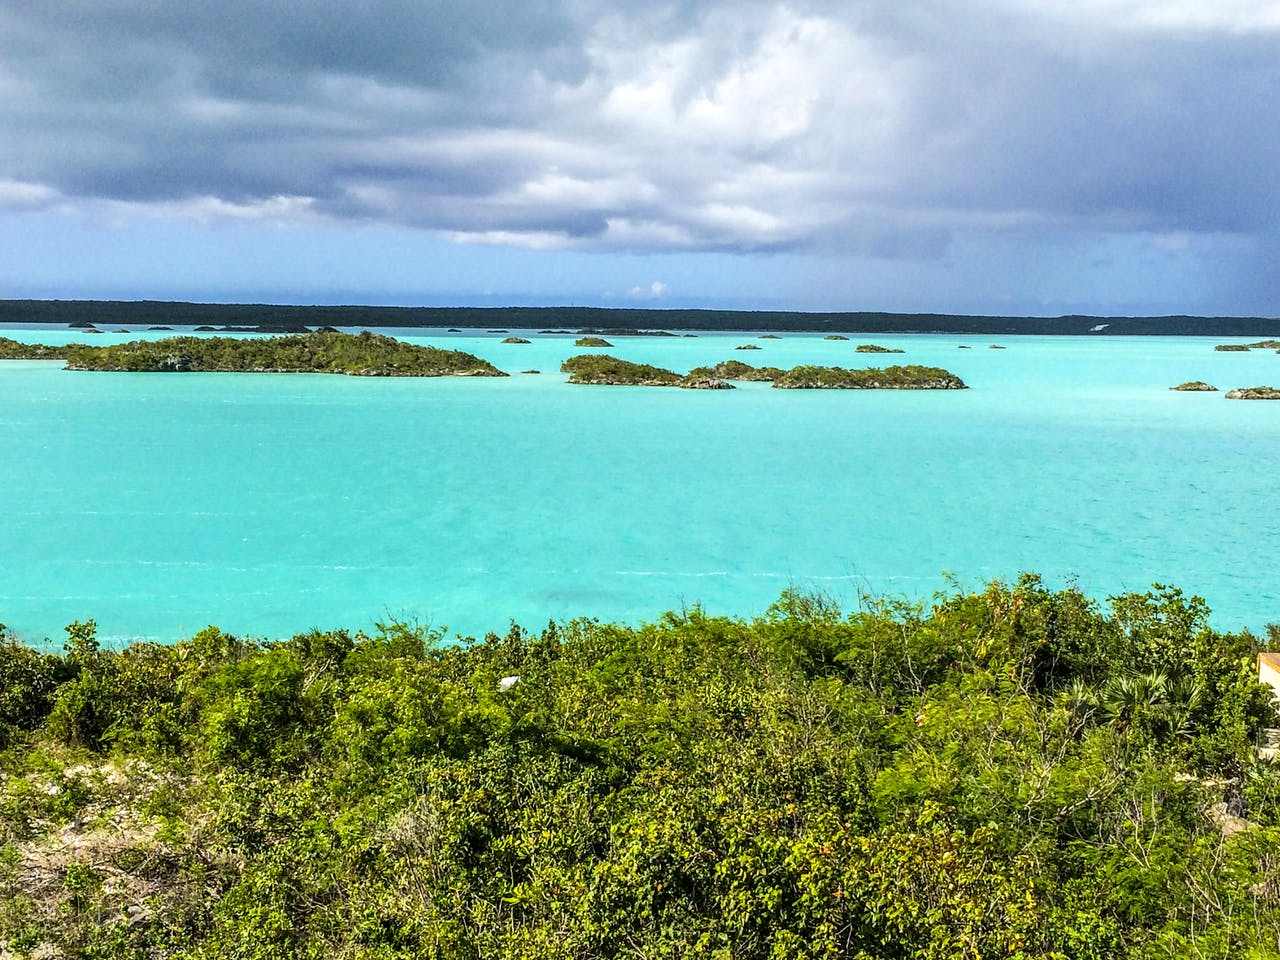 A Glimpse Into The Breathtakingly Beautiful Turks and Caicos Islands